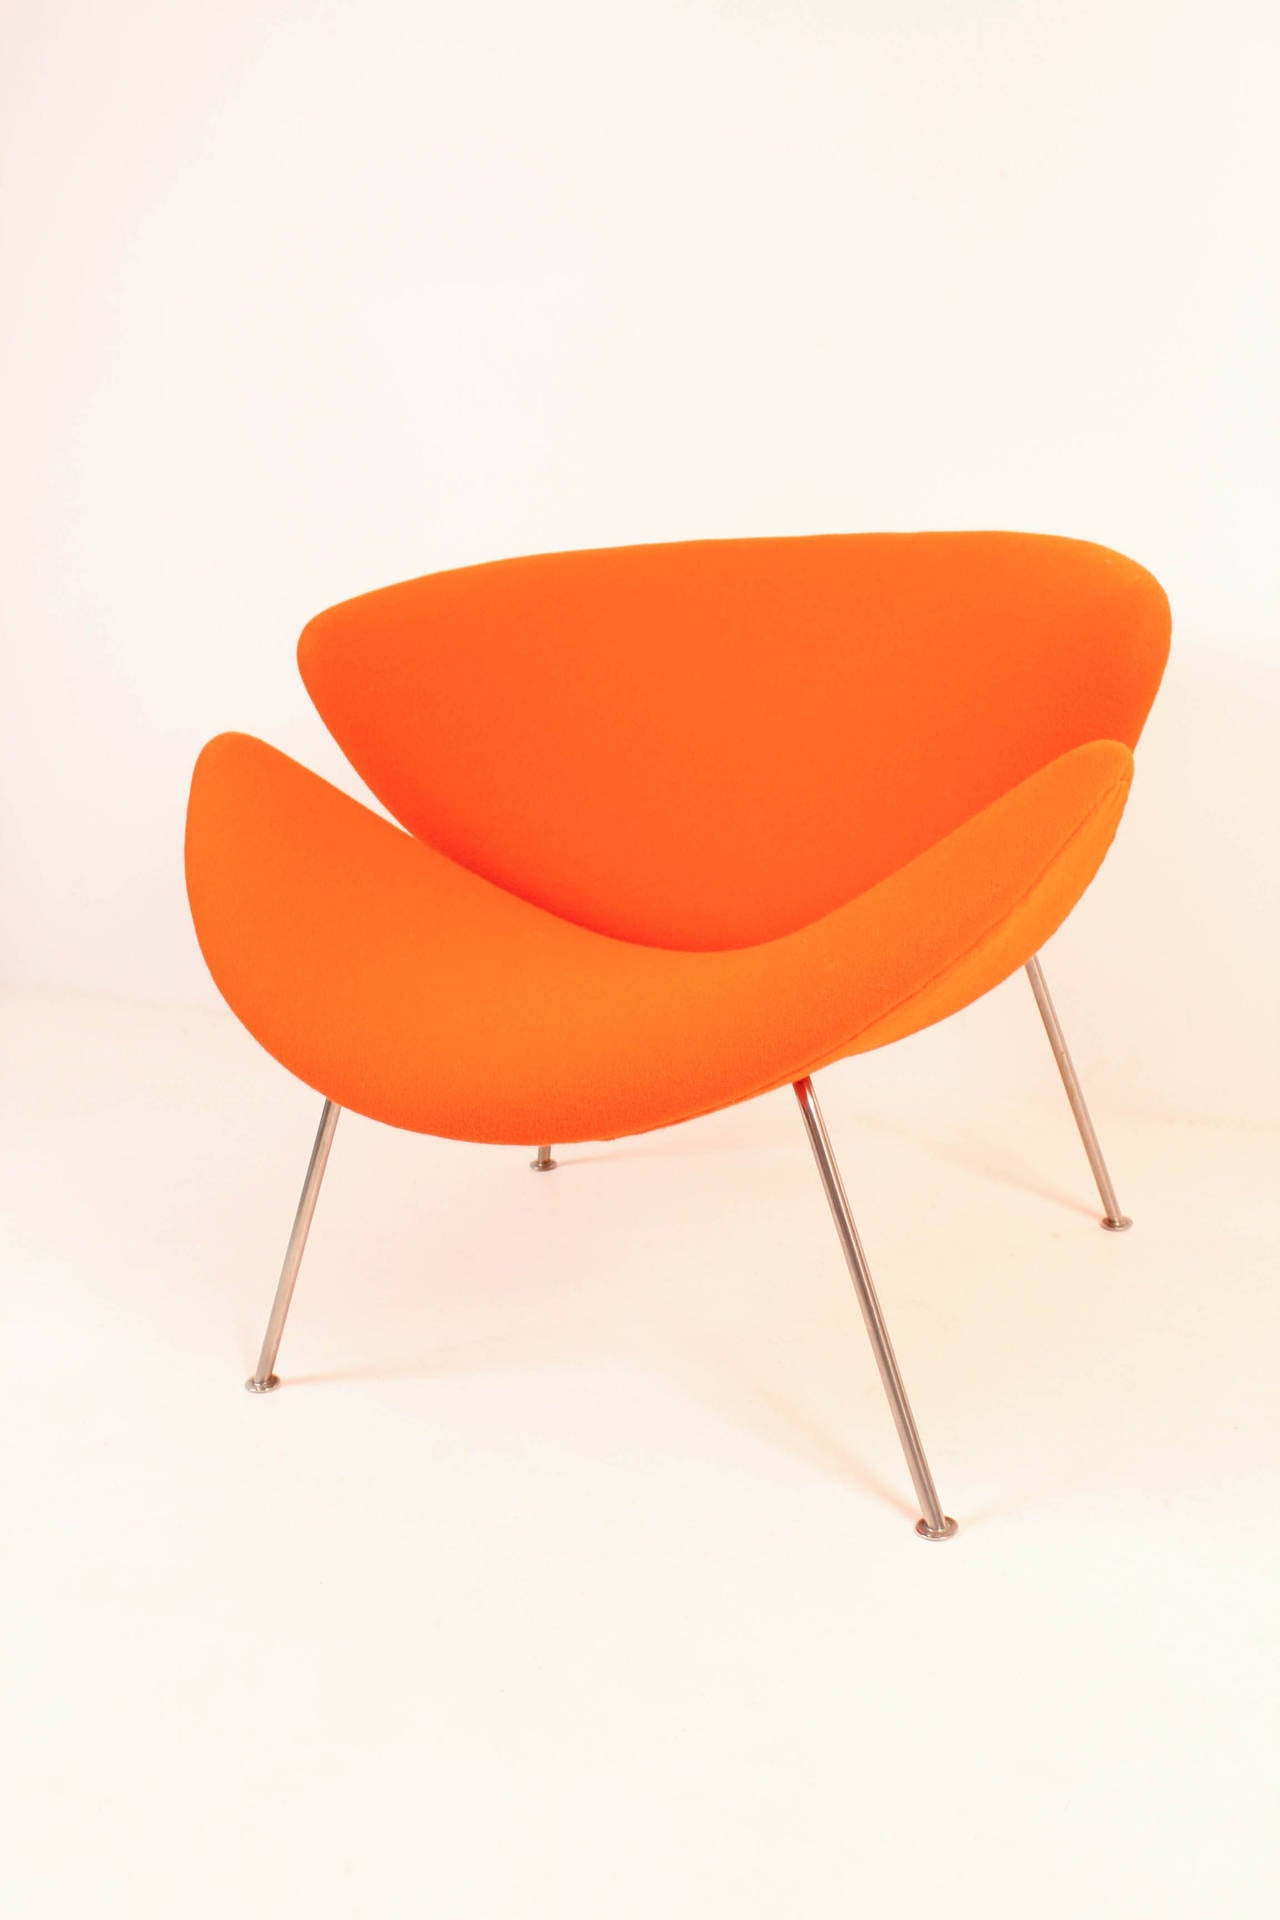 orange slice chair outdoor chairs world market vintage f437 by pierre paulin for